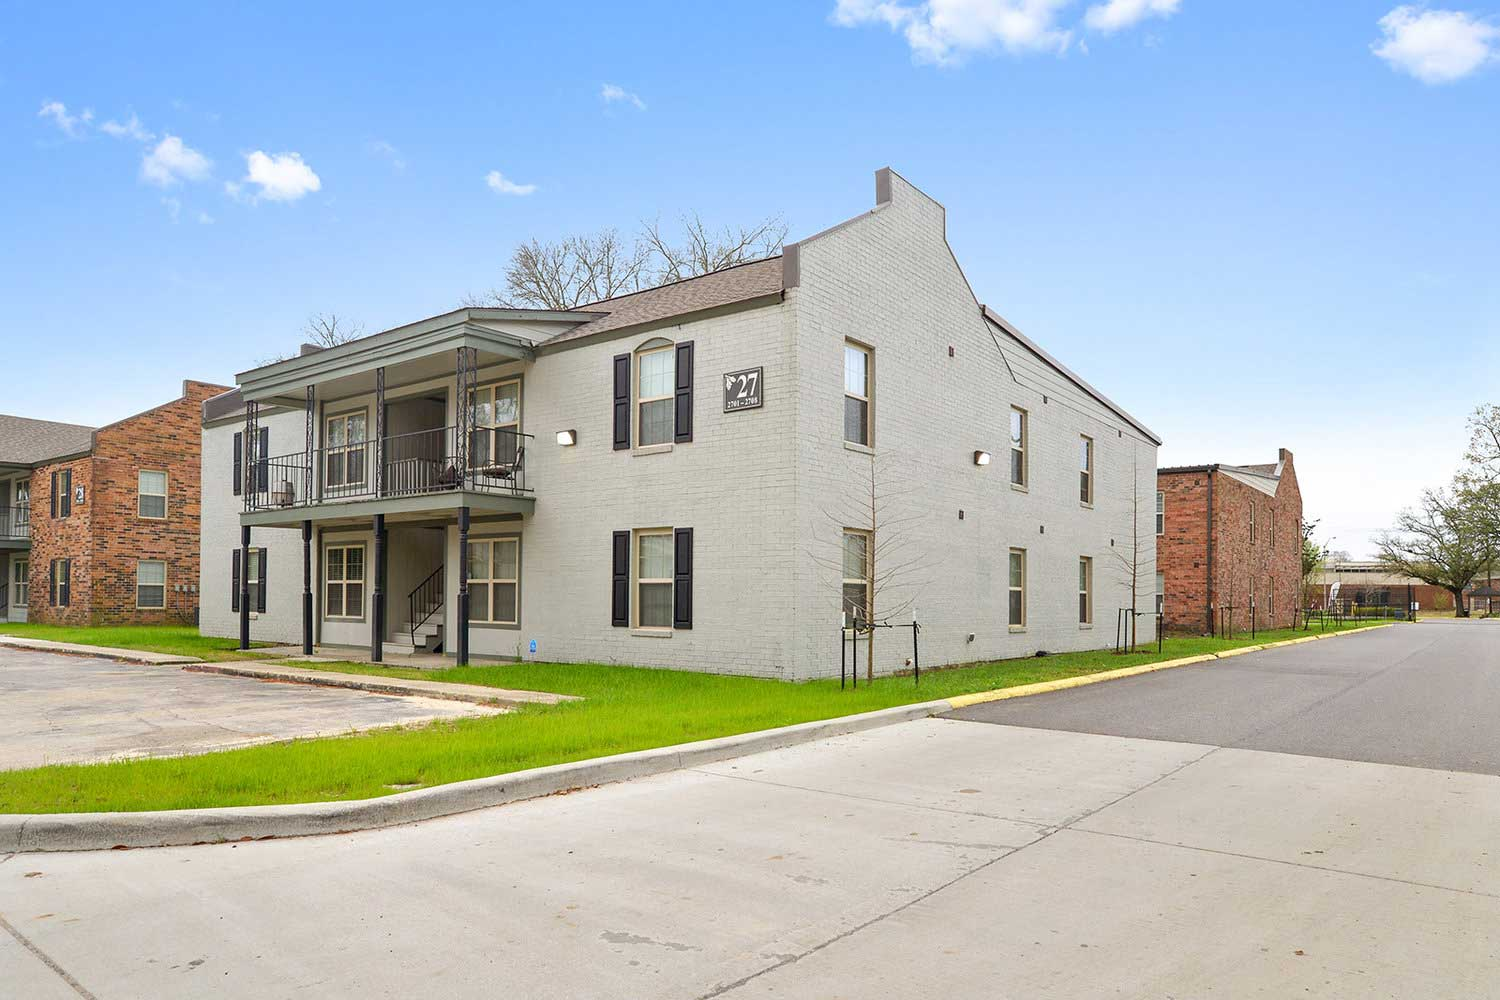 Baton Rouge Apartment Rentals at Ardendale Oaks Apartments in Baton Rouge, Louisiana